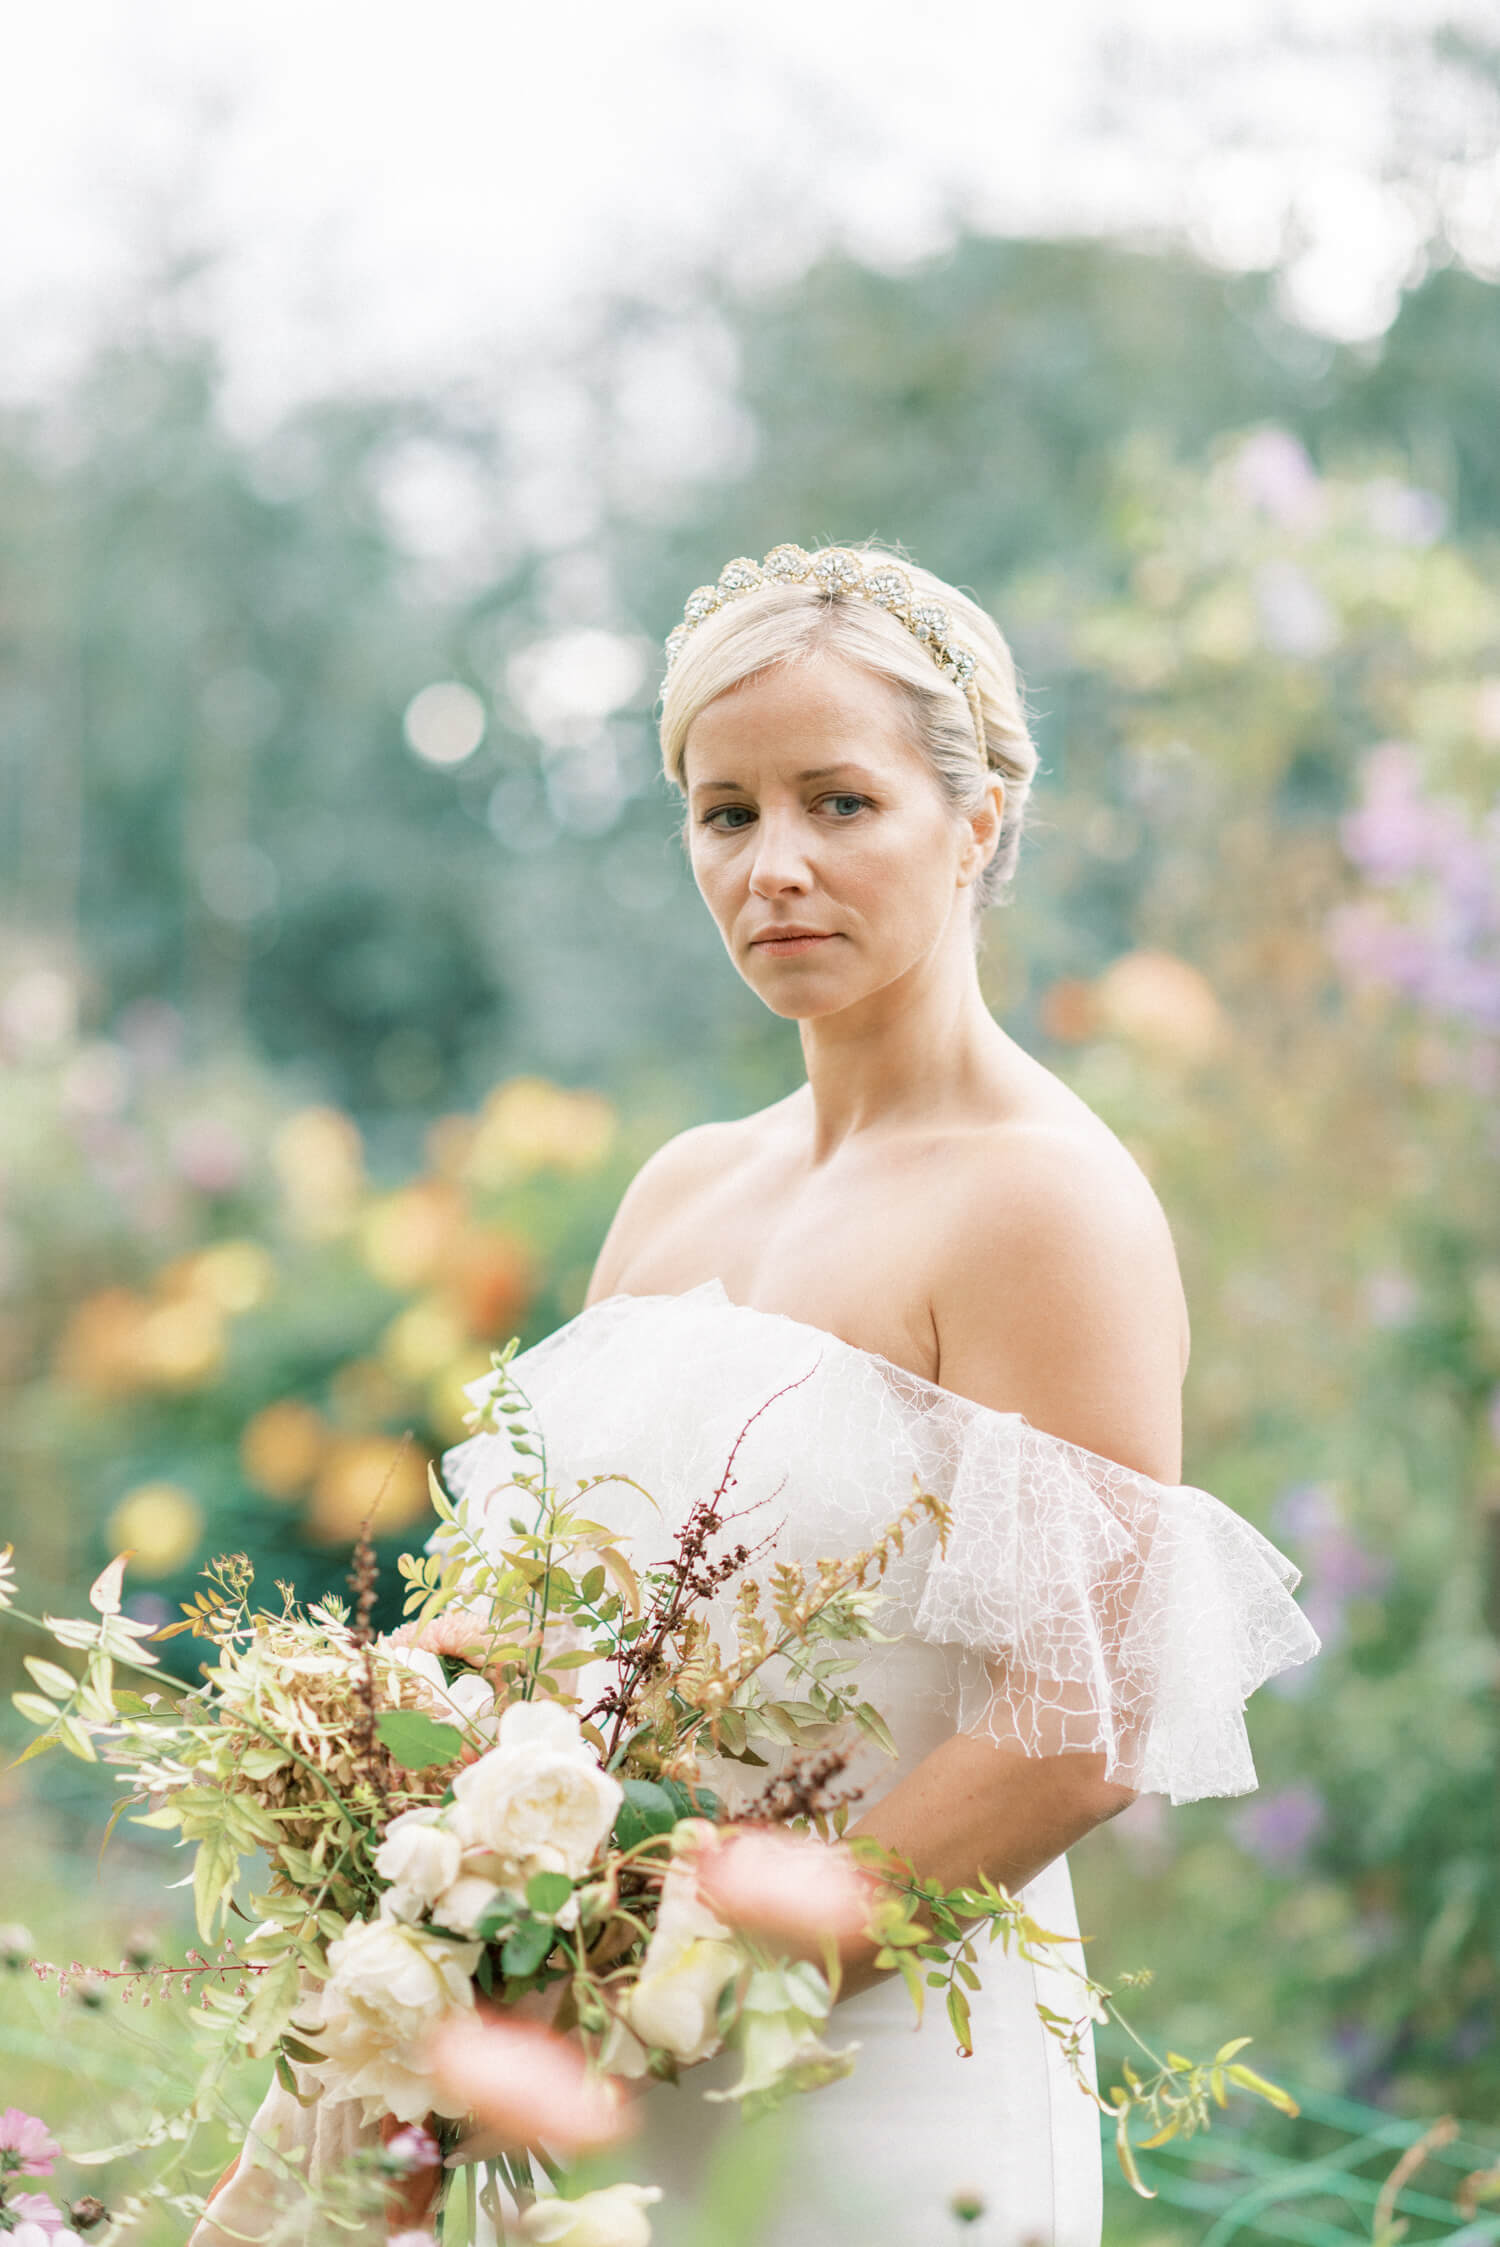 English Countryside Autumn Wedding at a Flower Farm | Photos and Text by Cristina Ilao Photography | bride portrait in the middle of Holme Flower Farm. Bride is wearing a white lace off shoulder wedding dress while holding an autumn wedding bouquet